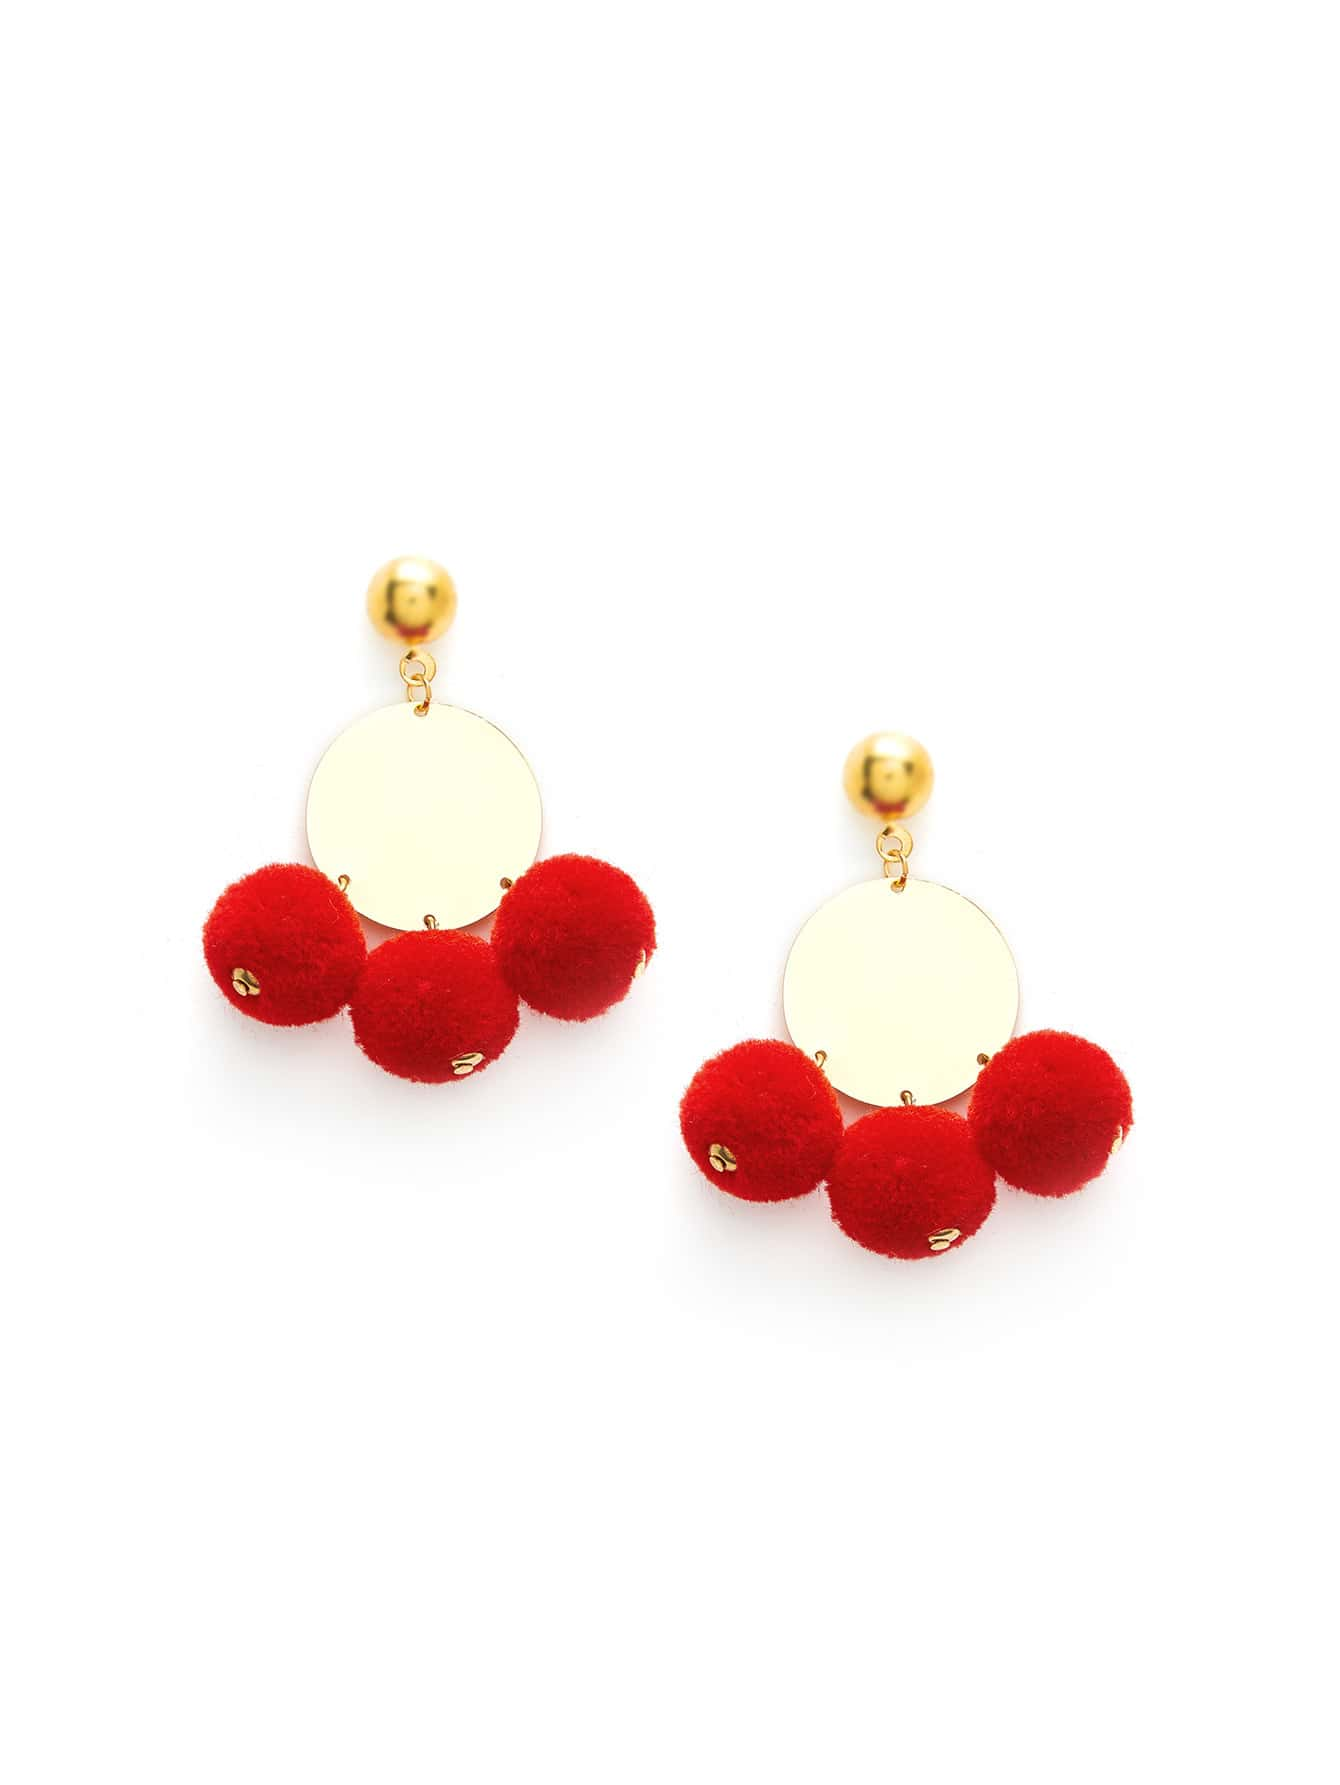 Three Pom Pom Design Drop Earrings